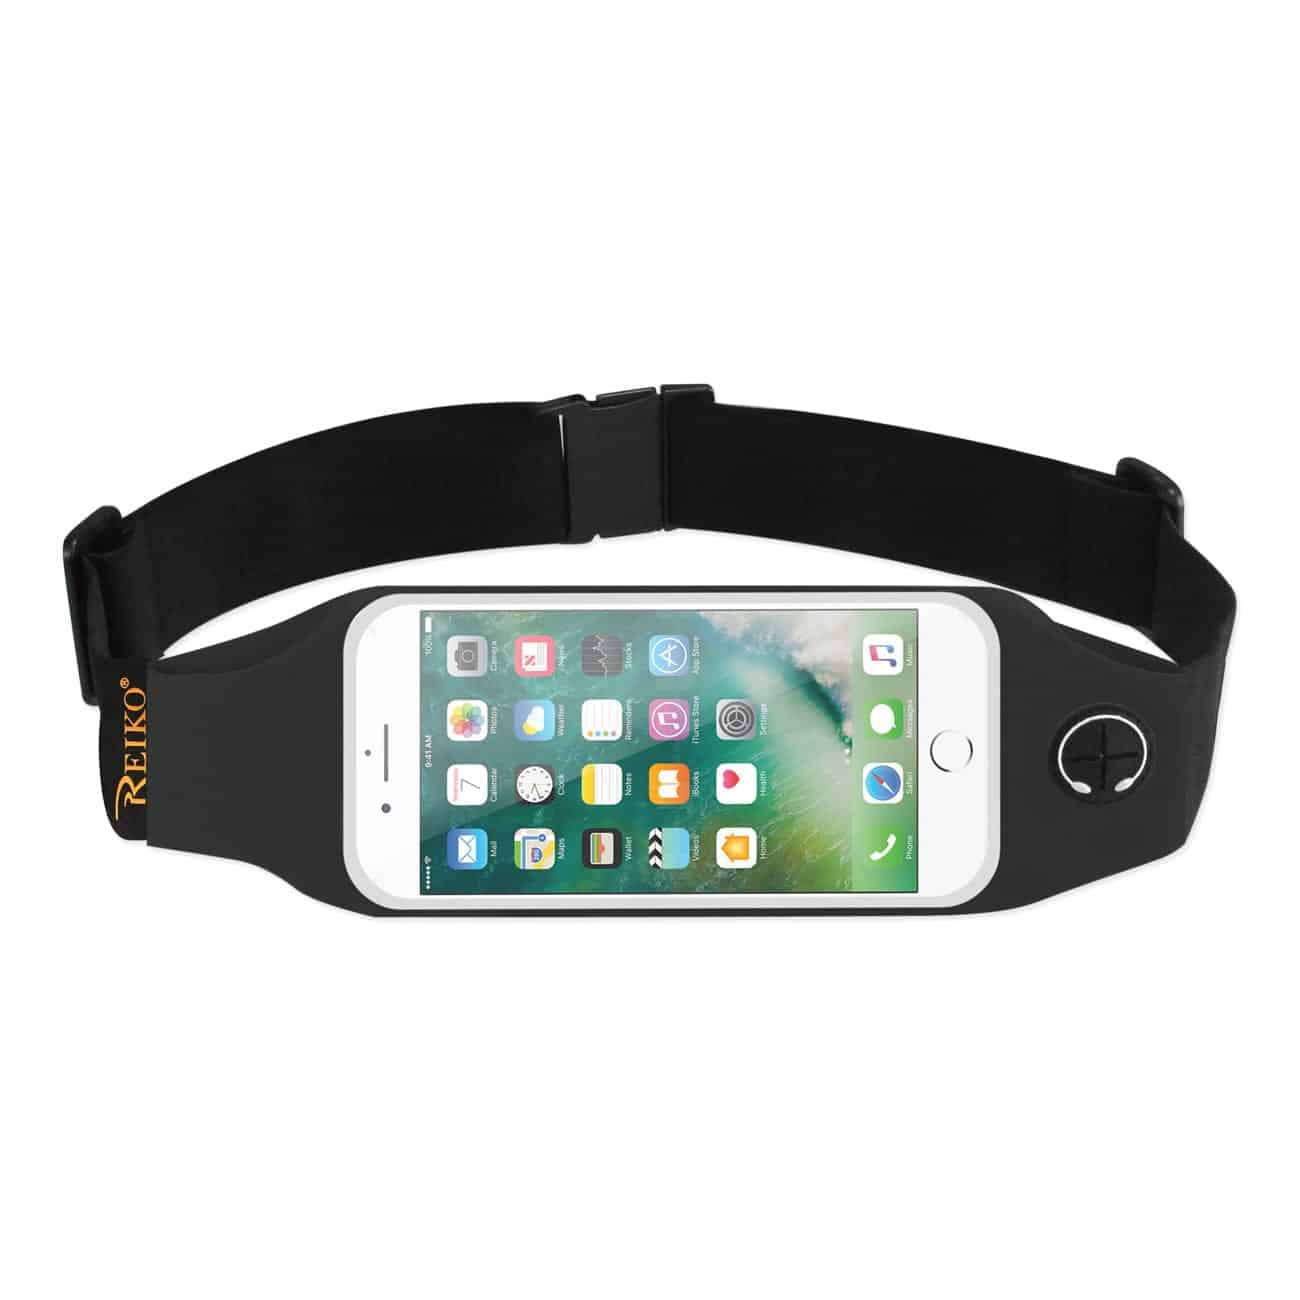 RUNNING SPORT BELT FOR IPHONE 7 PLUS/ 6S PLUS OR 5.5 INCHES DEVICE WITH TWO POCKETS AND LED IN BLACK (5.5x5.5 INCHES)